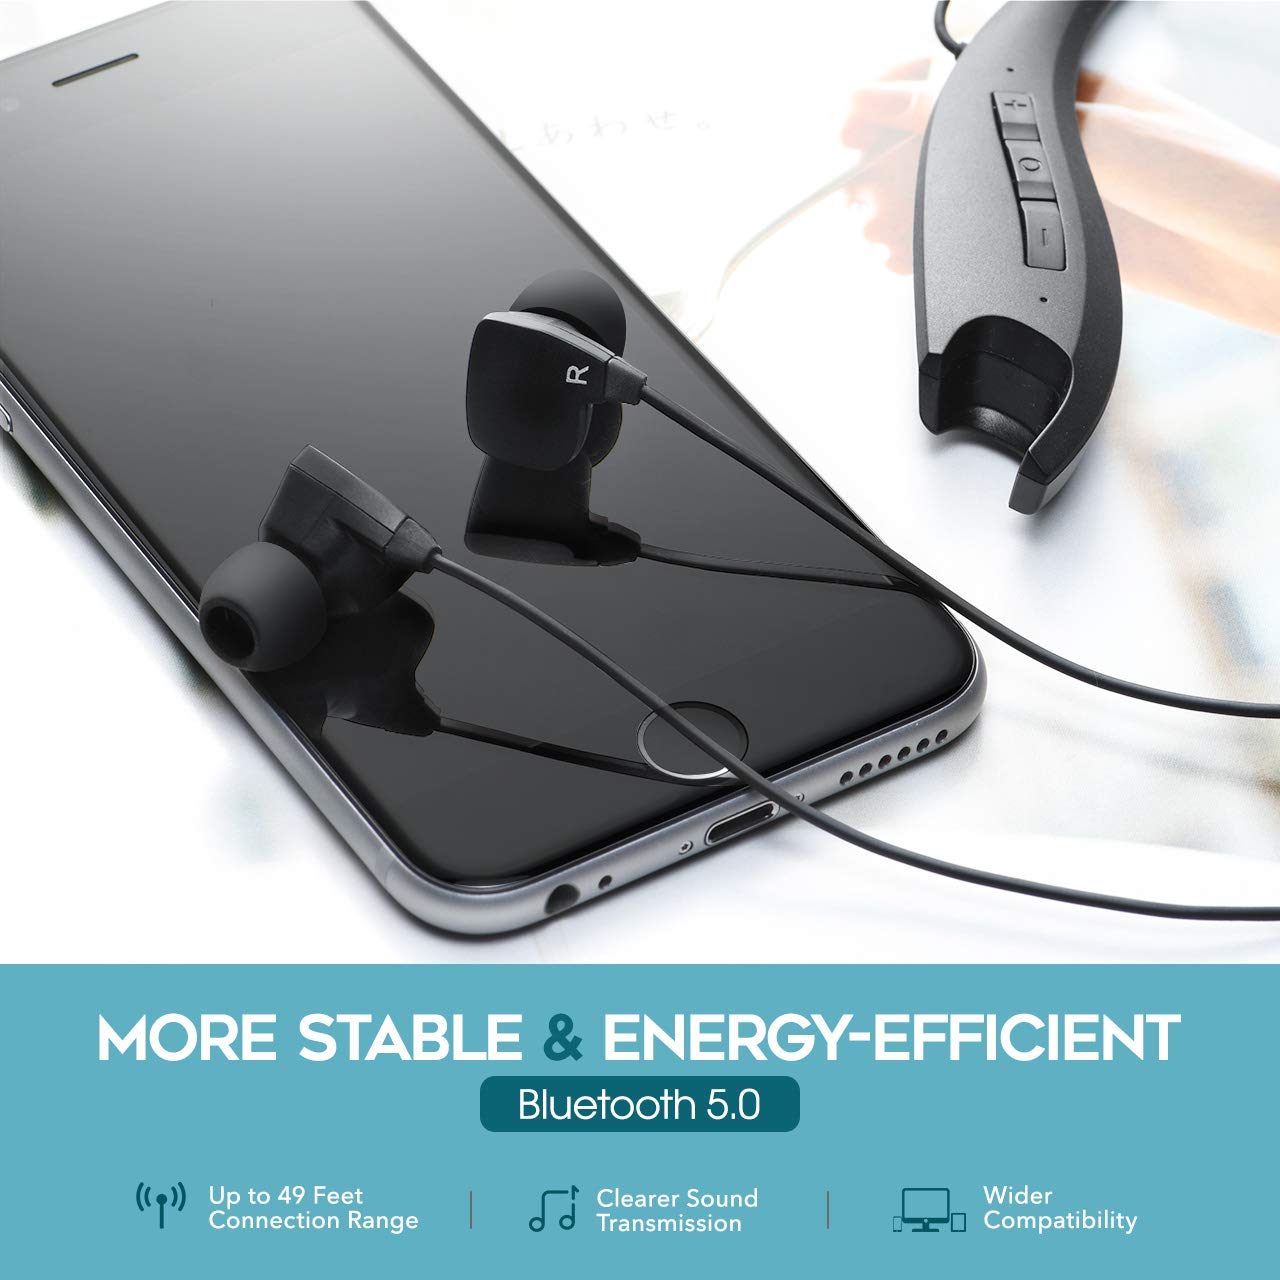 Mpow Upgraded Jaws Gen5 Bluetooth Headphones V5.0 Bluetooth Neckband Headset, 18H Playtime, Bluetooth Magnetic Earphones W/Call Vibrate & CVC 6.0 Noise Cancelling Mic, Wireless Neckband Headphones. by Mpow (Image #2)